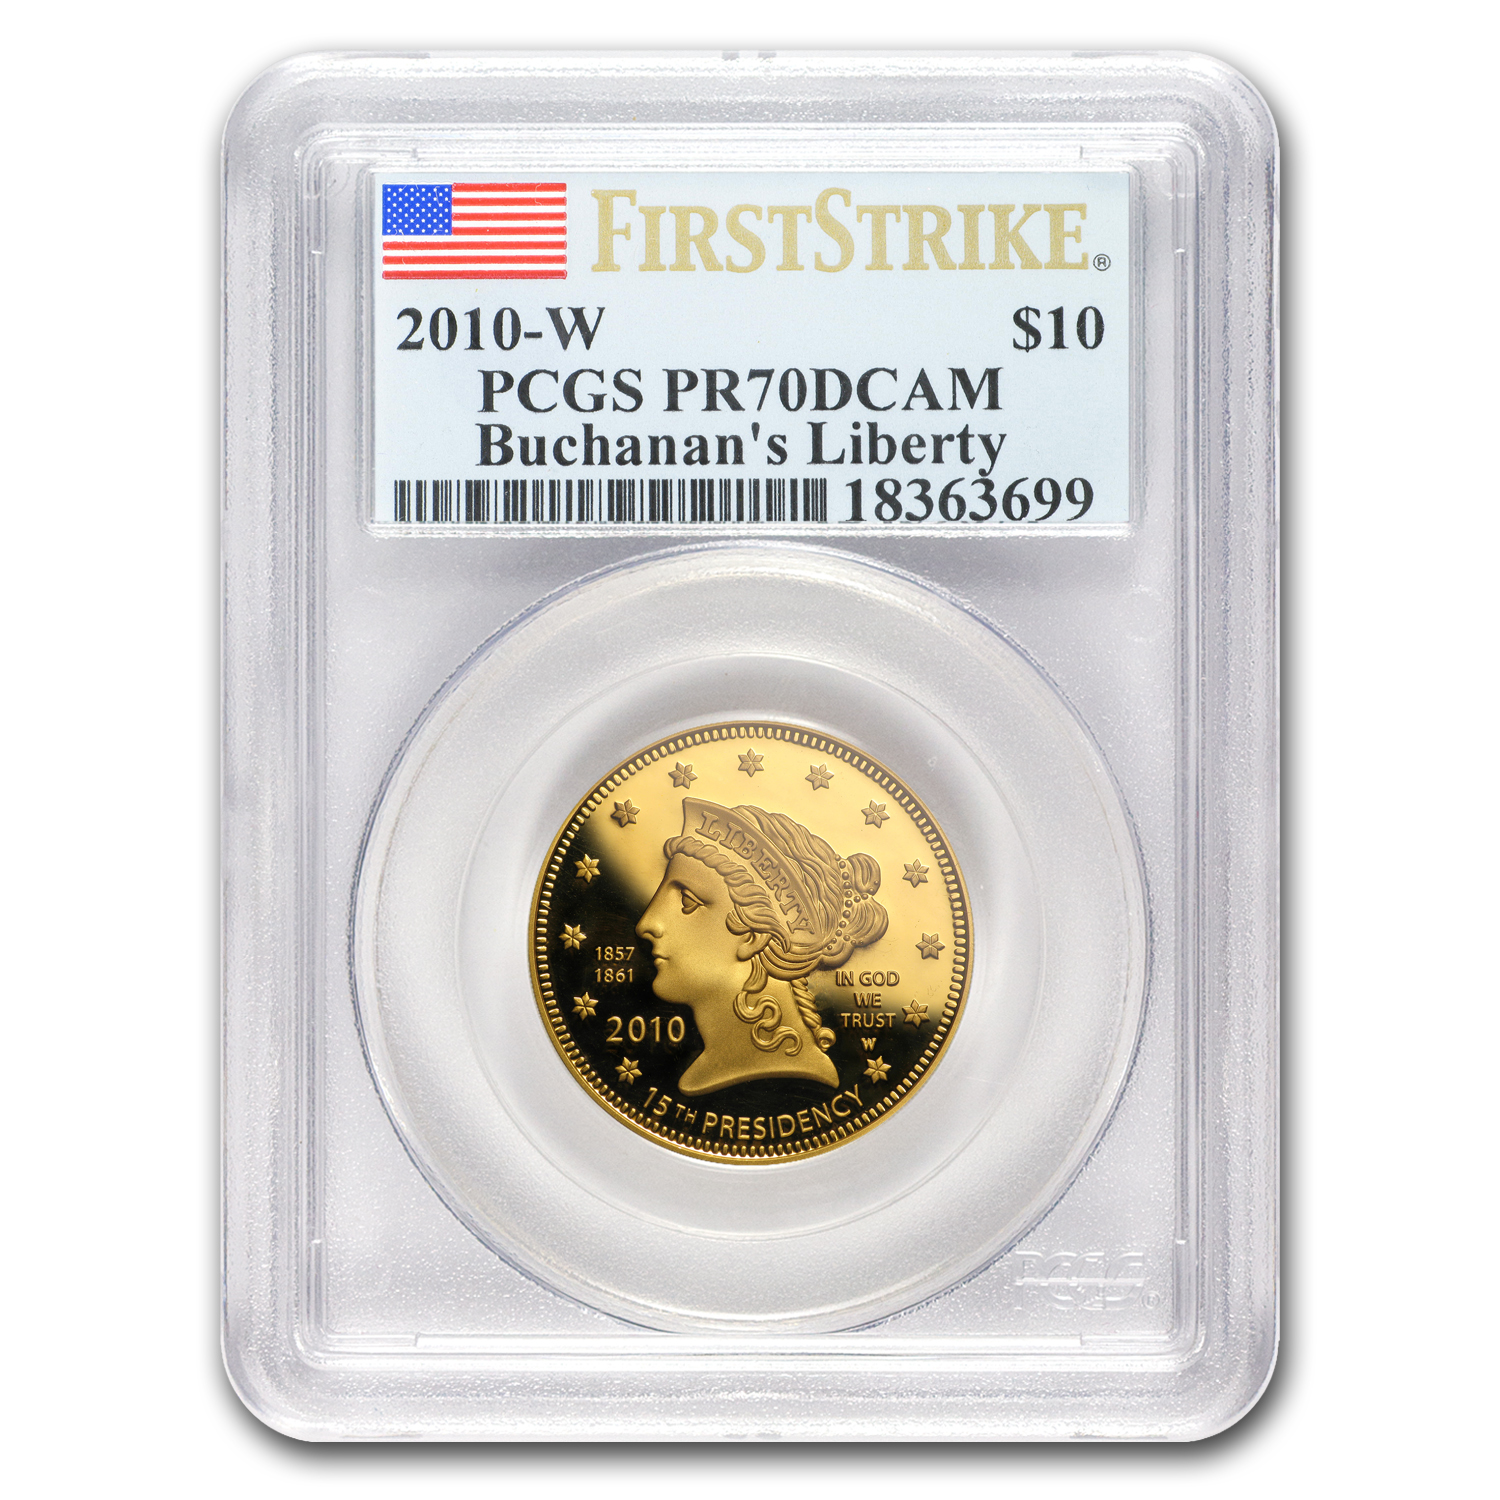 2010-W 1/2 oz Proof Gold Buchanan's Liberty PR-70 PCGS (FS)